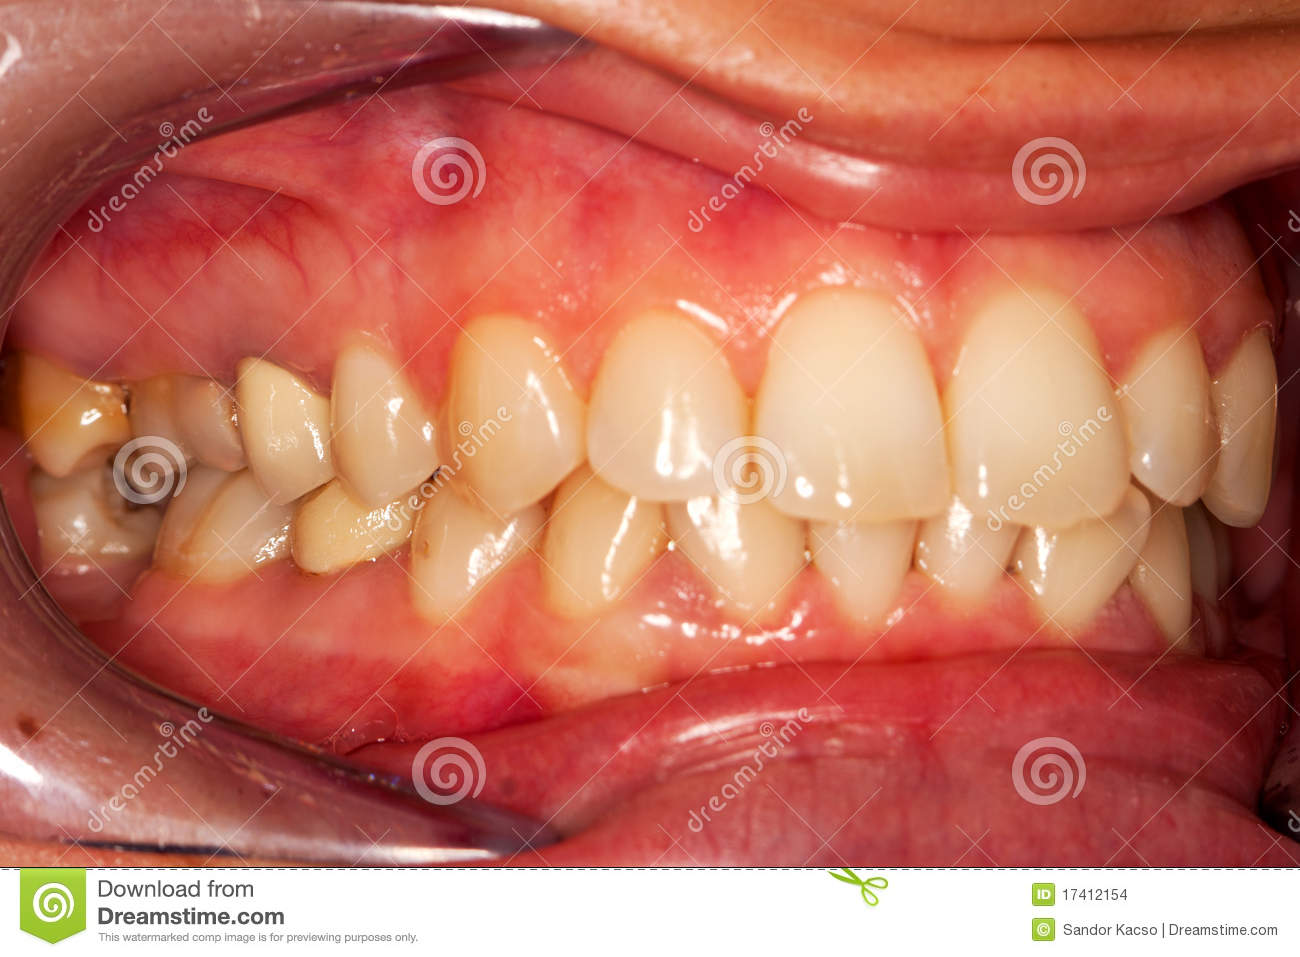 Dents humaines